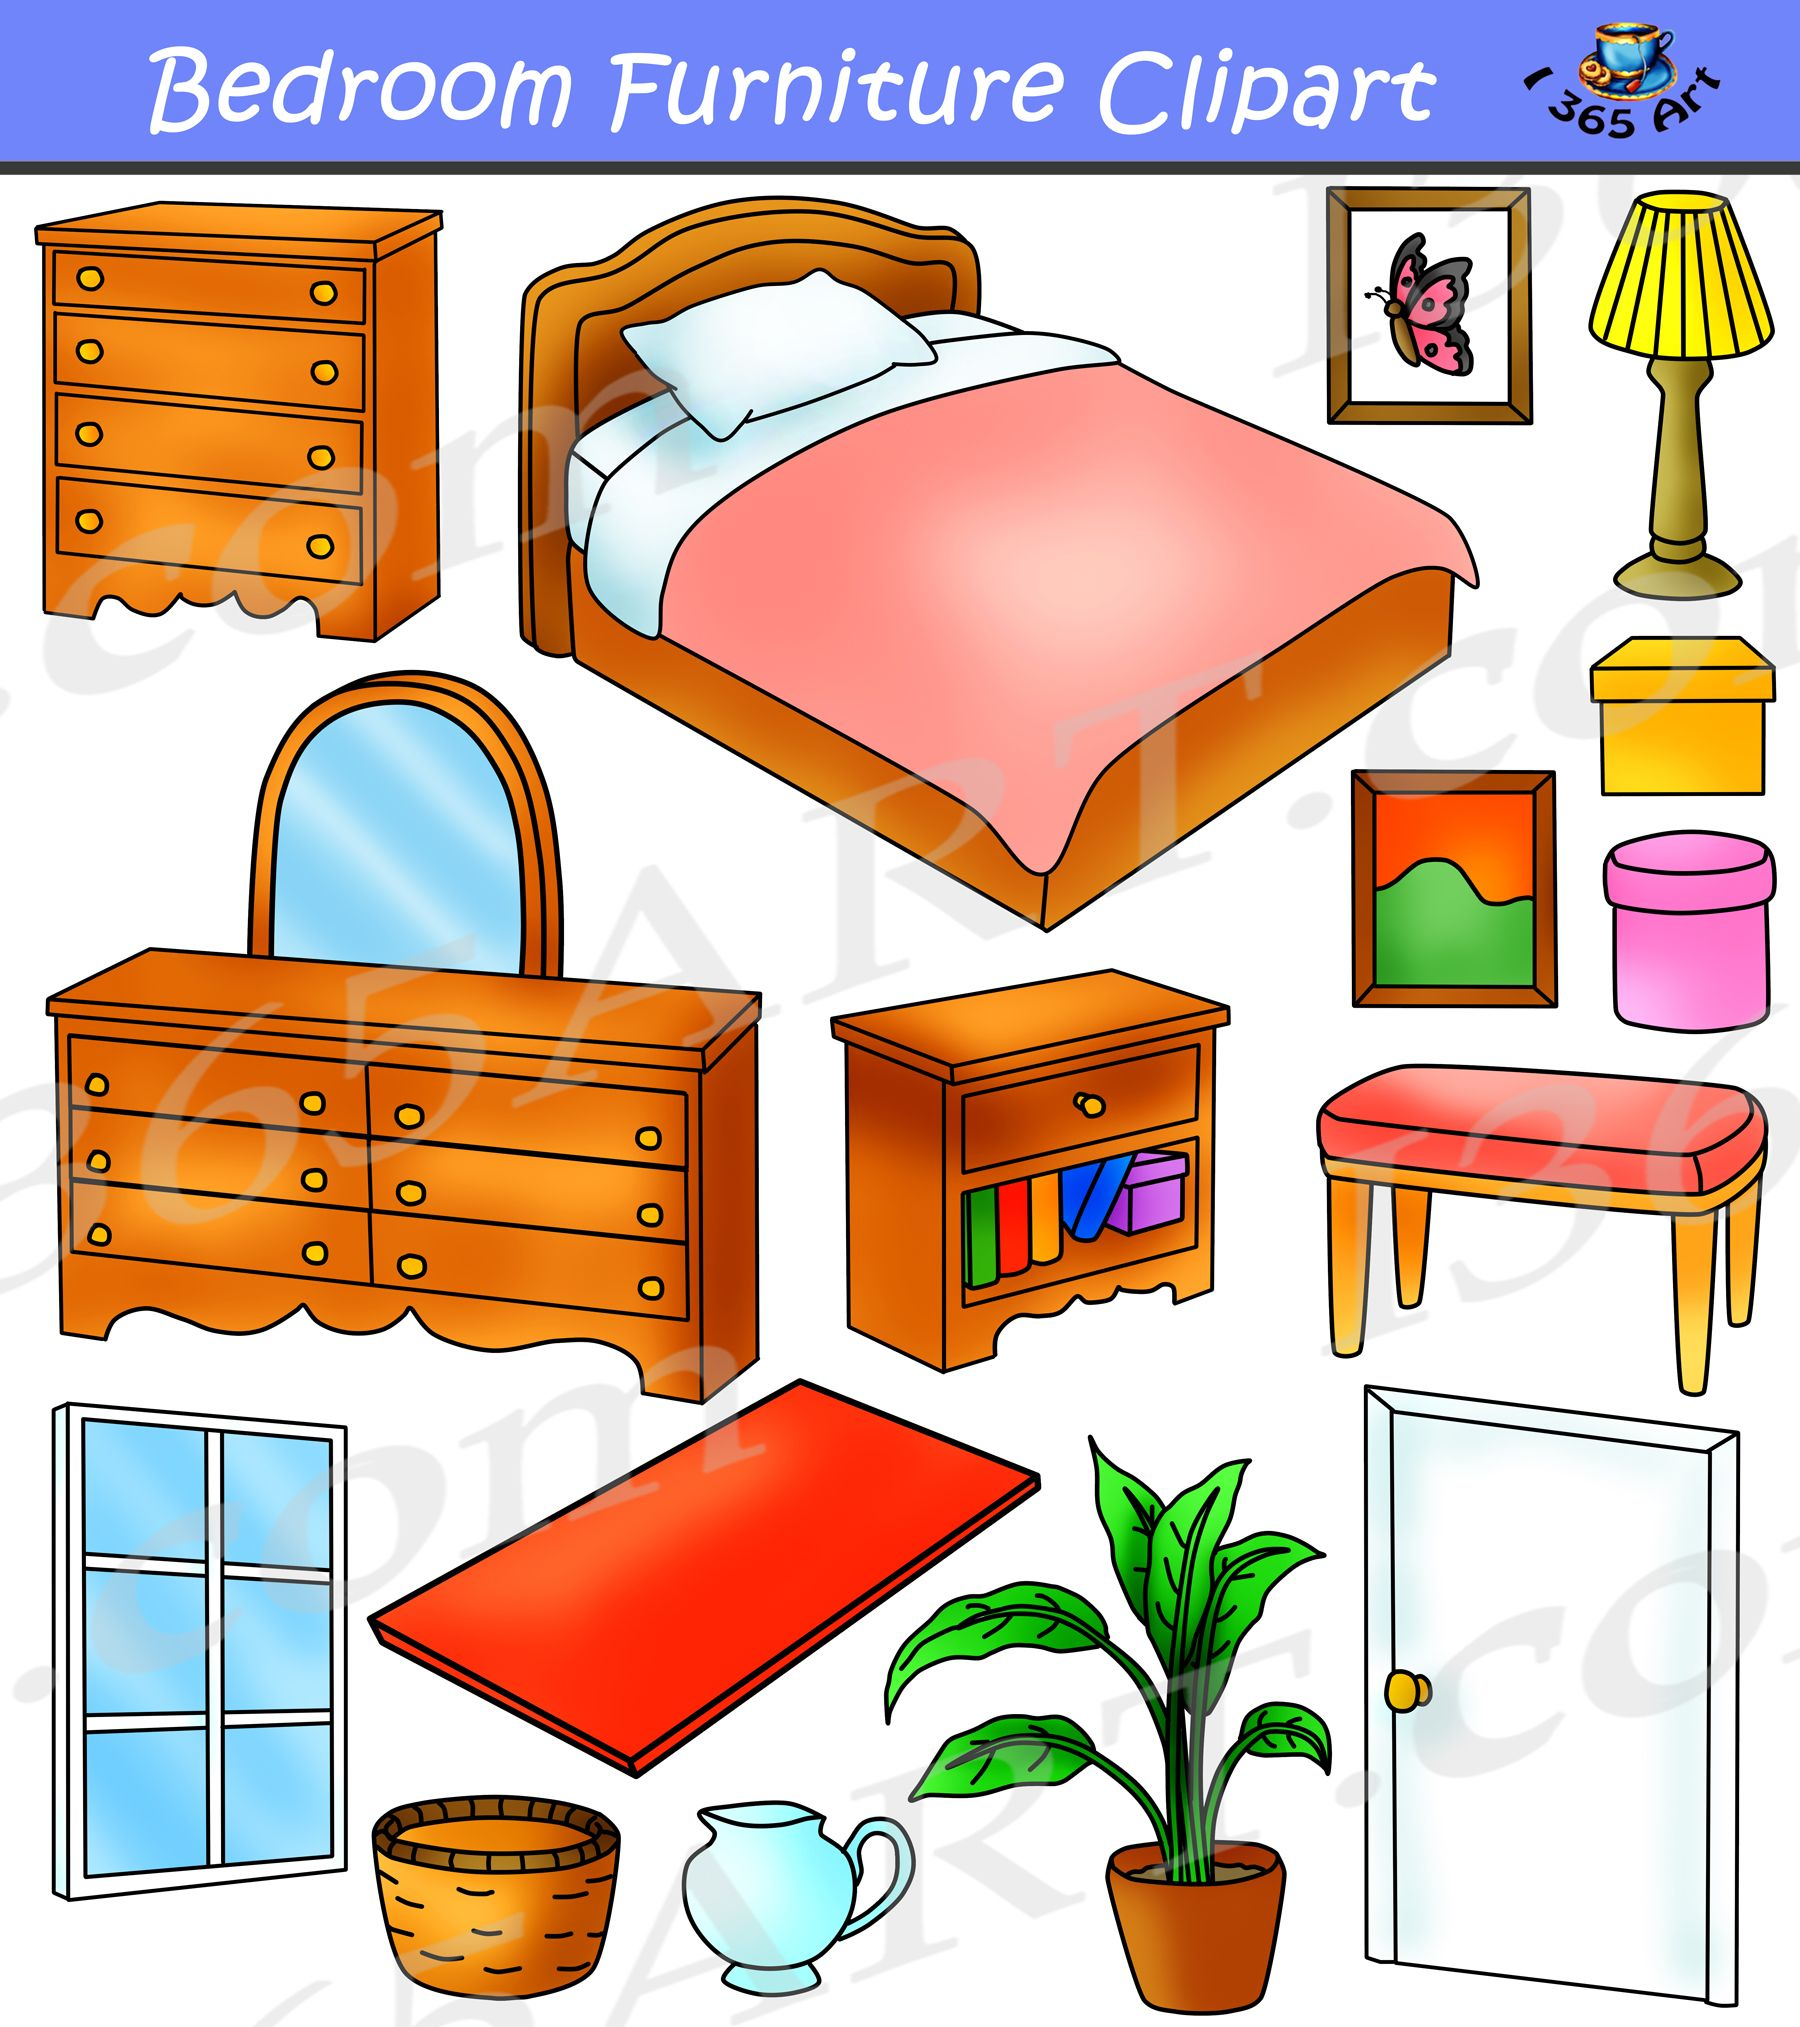 Furniture clipart household furniture. Colorful bedroom digital graphics